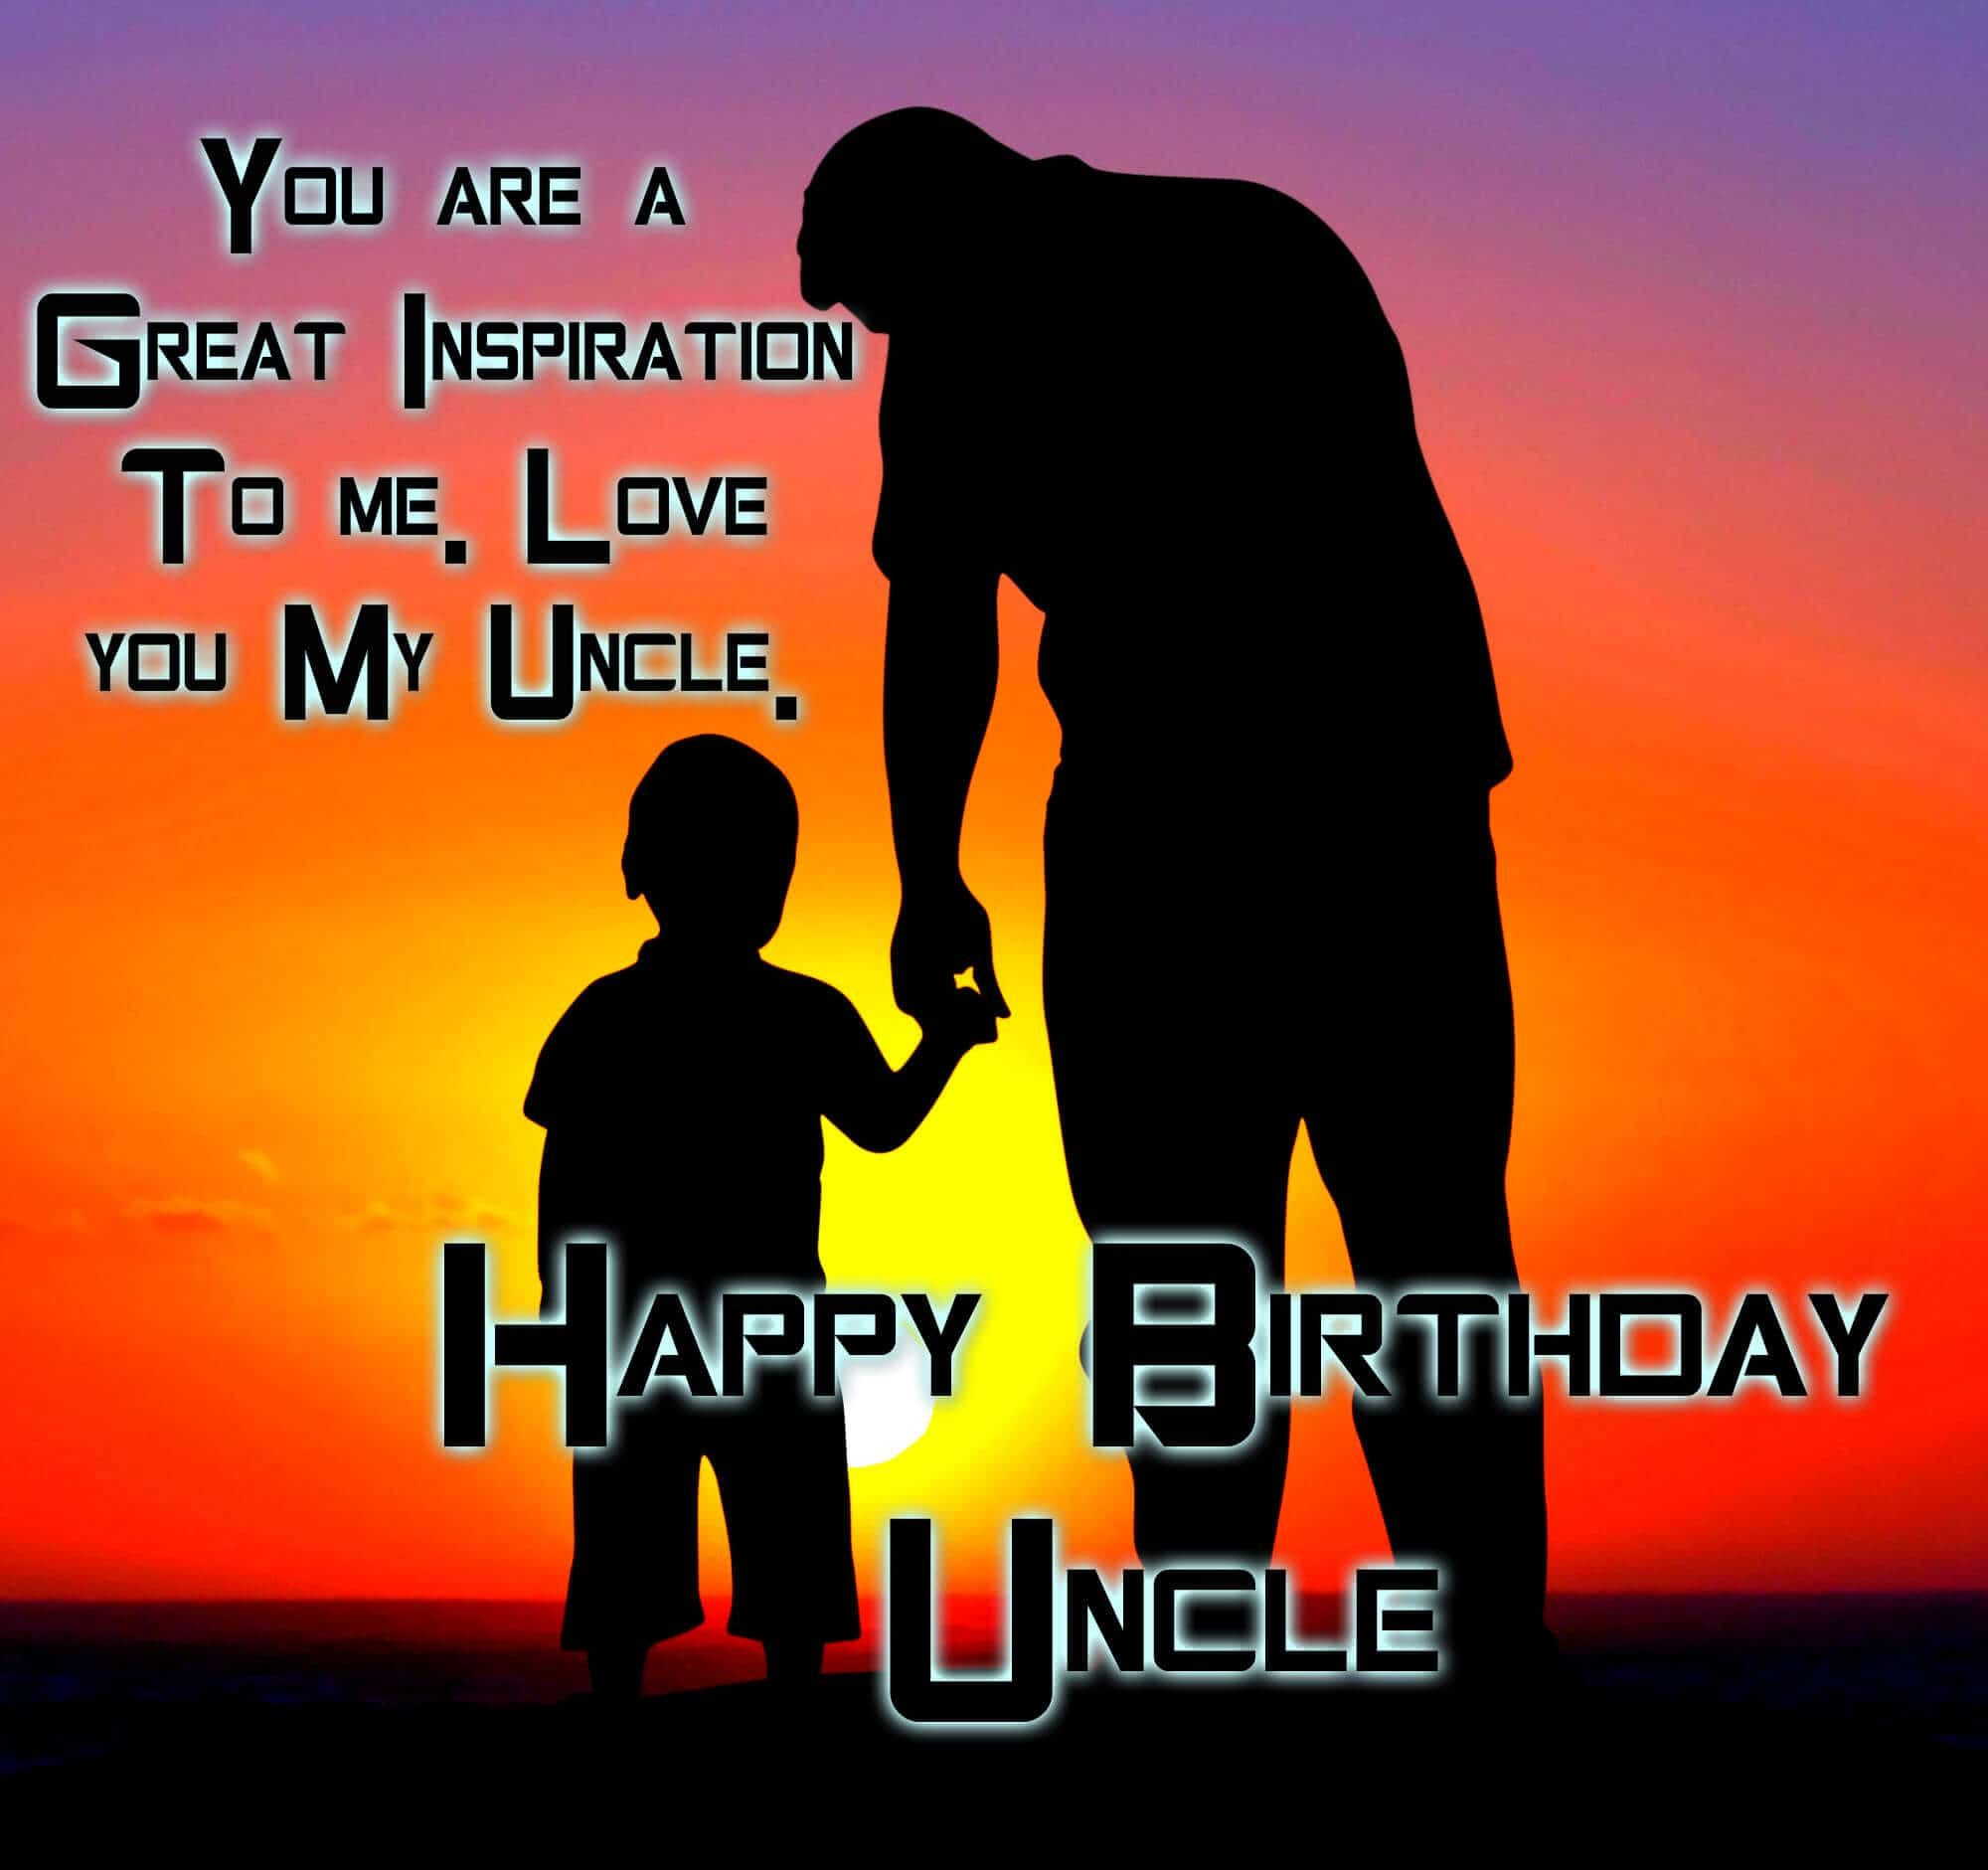 Christian Birthday Wishes To Uncle From Niece